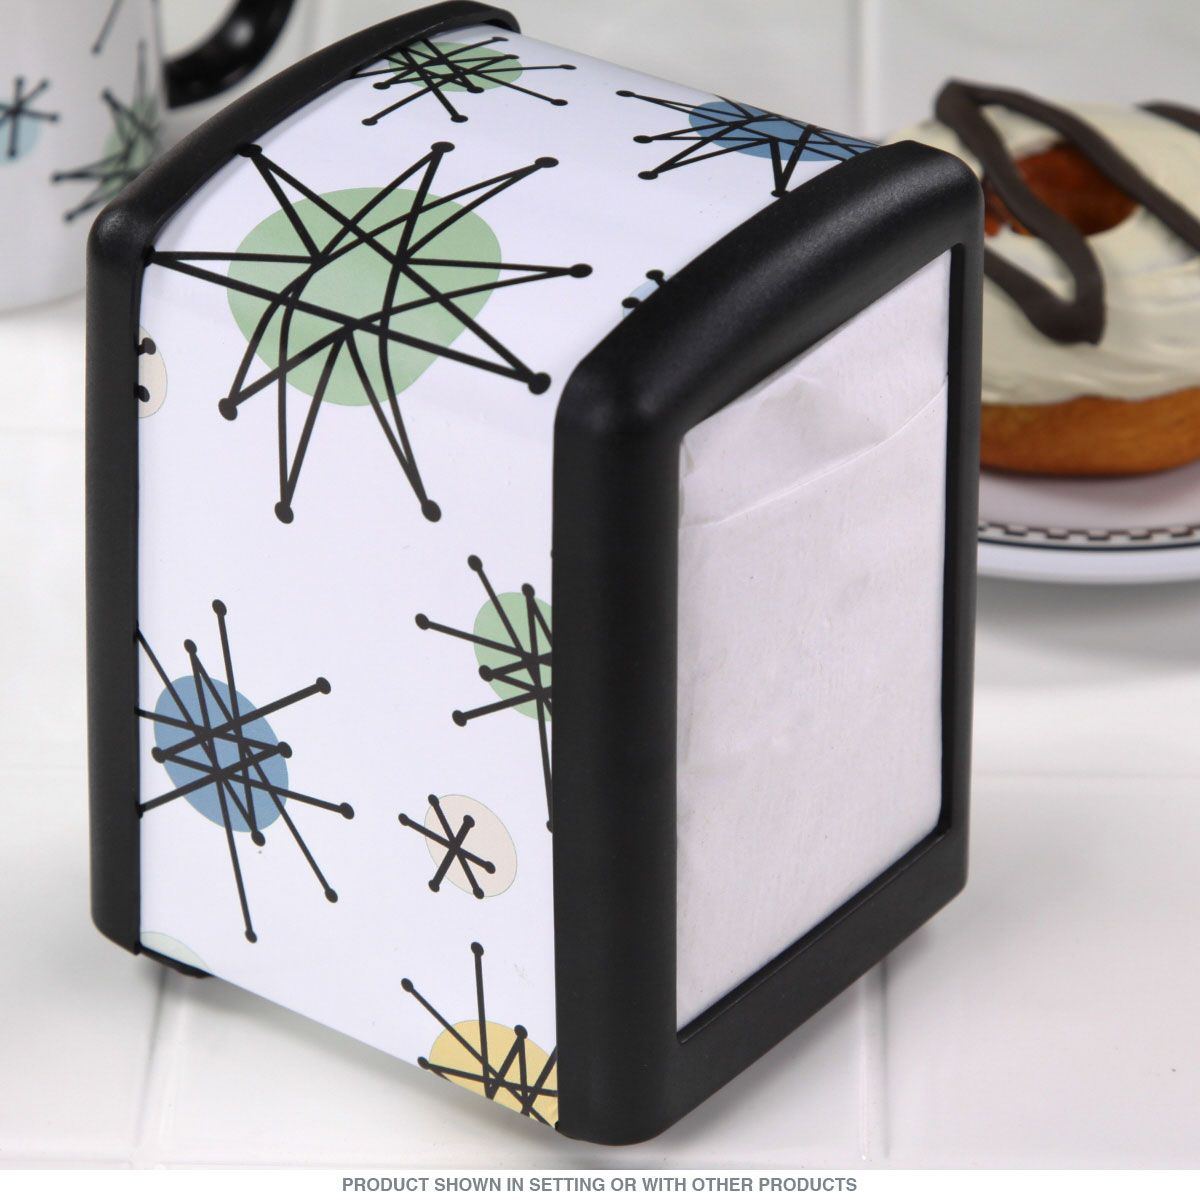 Retro diner napkin holder for half size restaurant napkins. Glossy vinyl decal with vintage Franciscan sputnik design makes it the perfect napkin dispenser for a 50s style diner, lunch room or dining room. Made of metal and plastic. Napkins not included. Measures 4.75